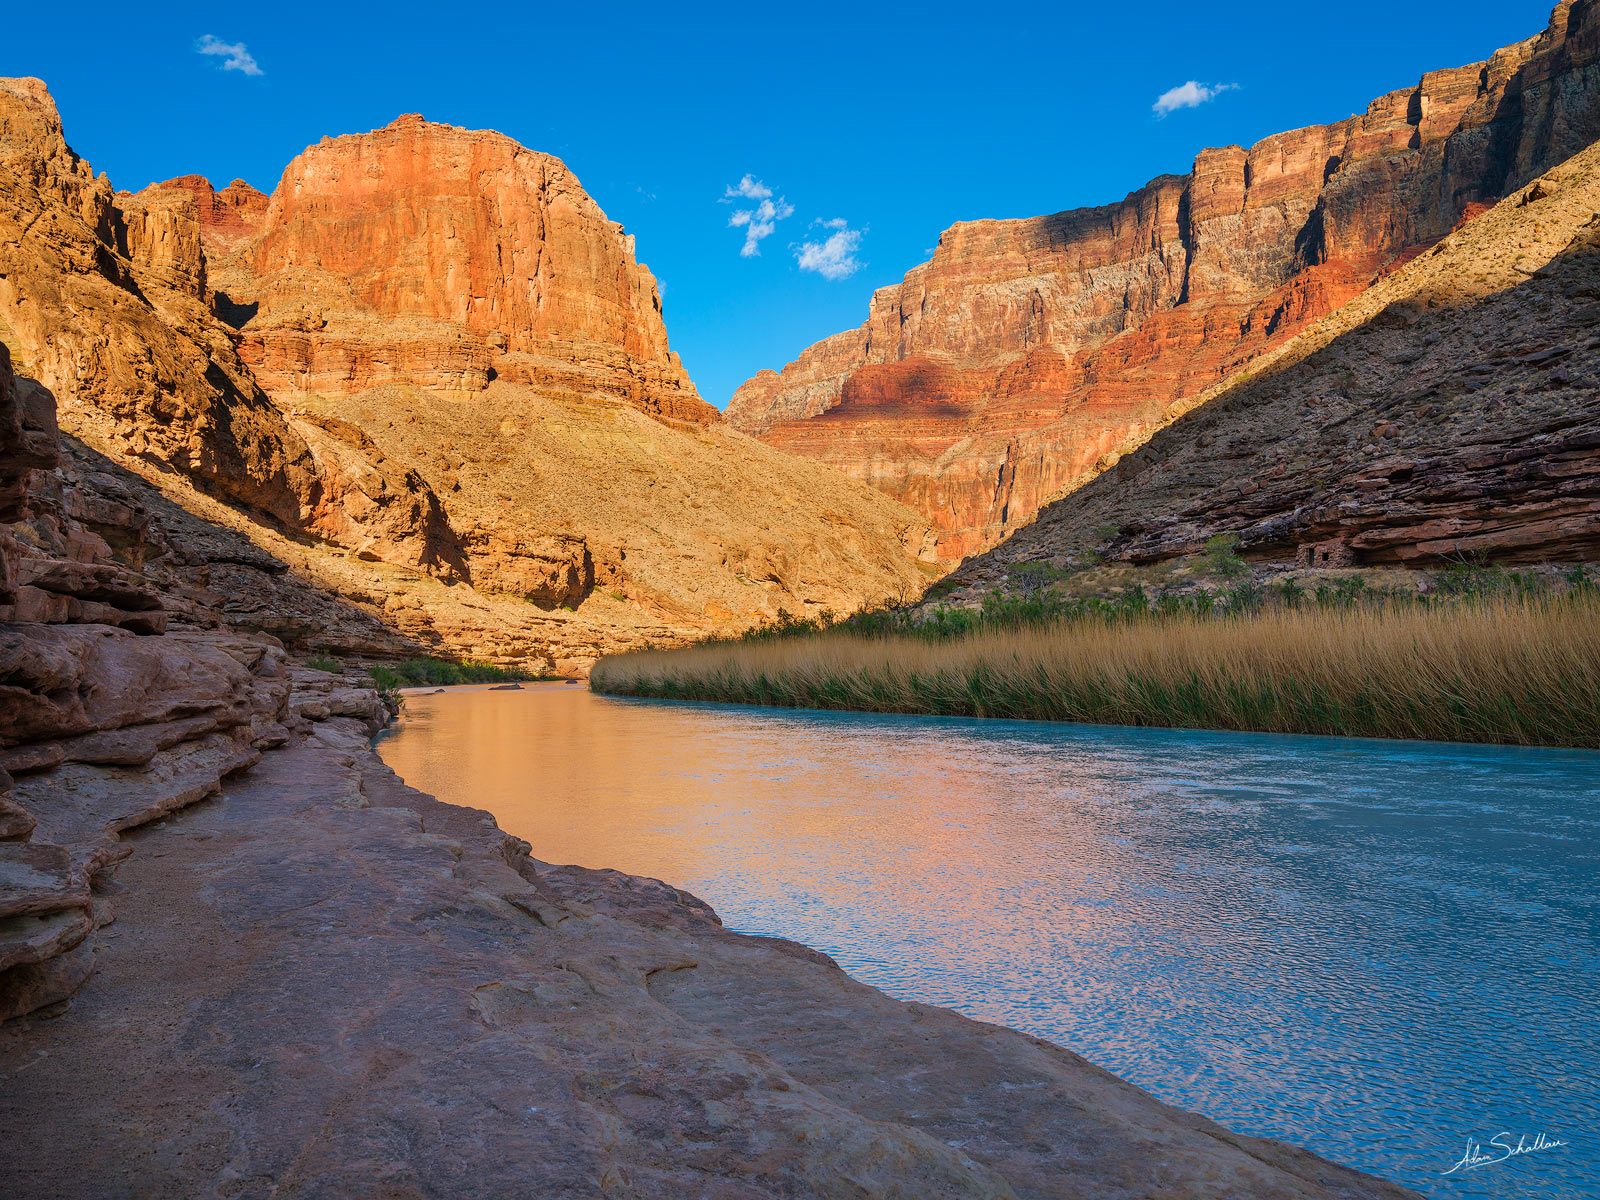 The cliffs surrounding the Little Colorado River begin to glow in late afternoon light. Across thr river is Beamer's Cabin. The...